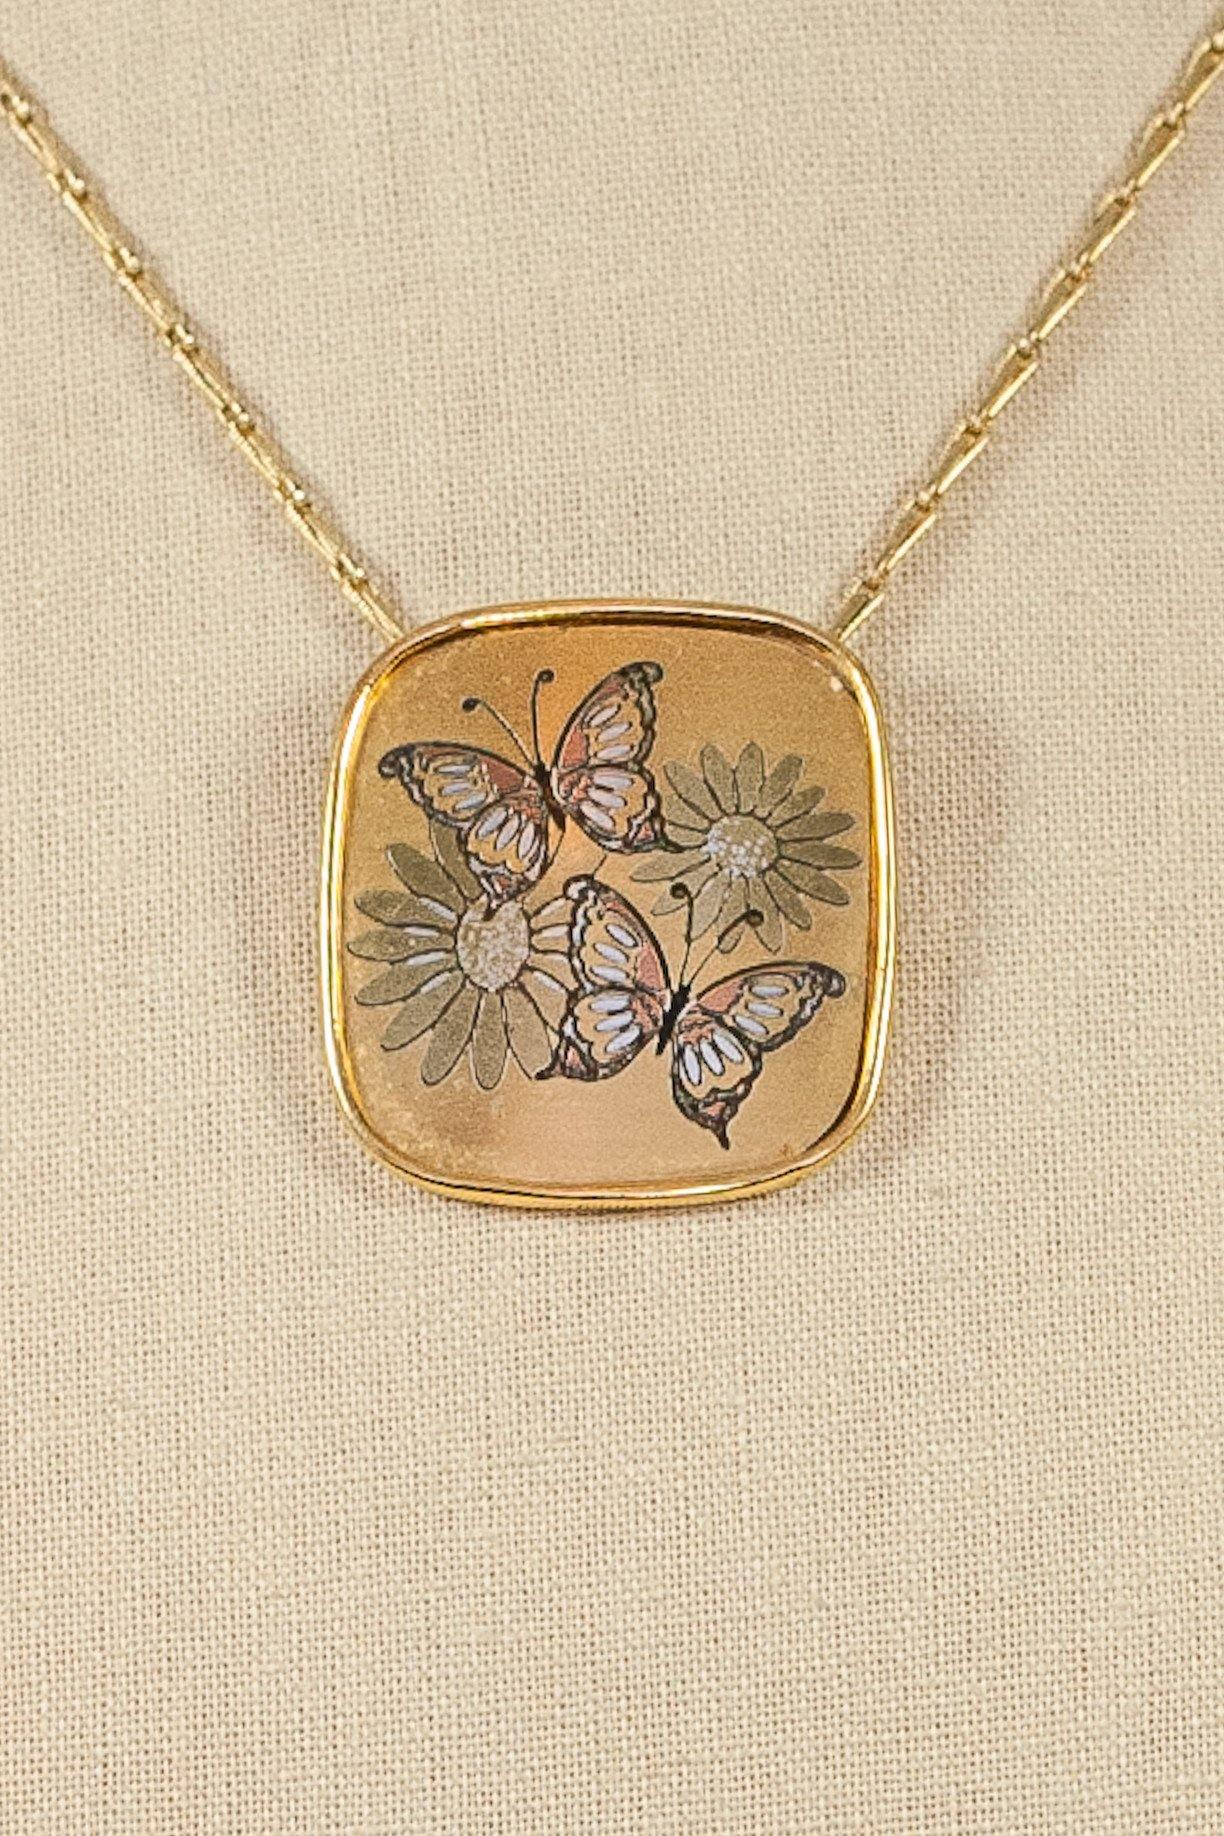 60's__Reed & Barton__Floral Damascene Pendant Necklace